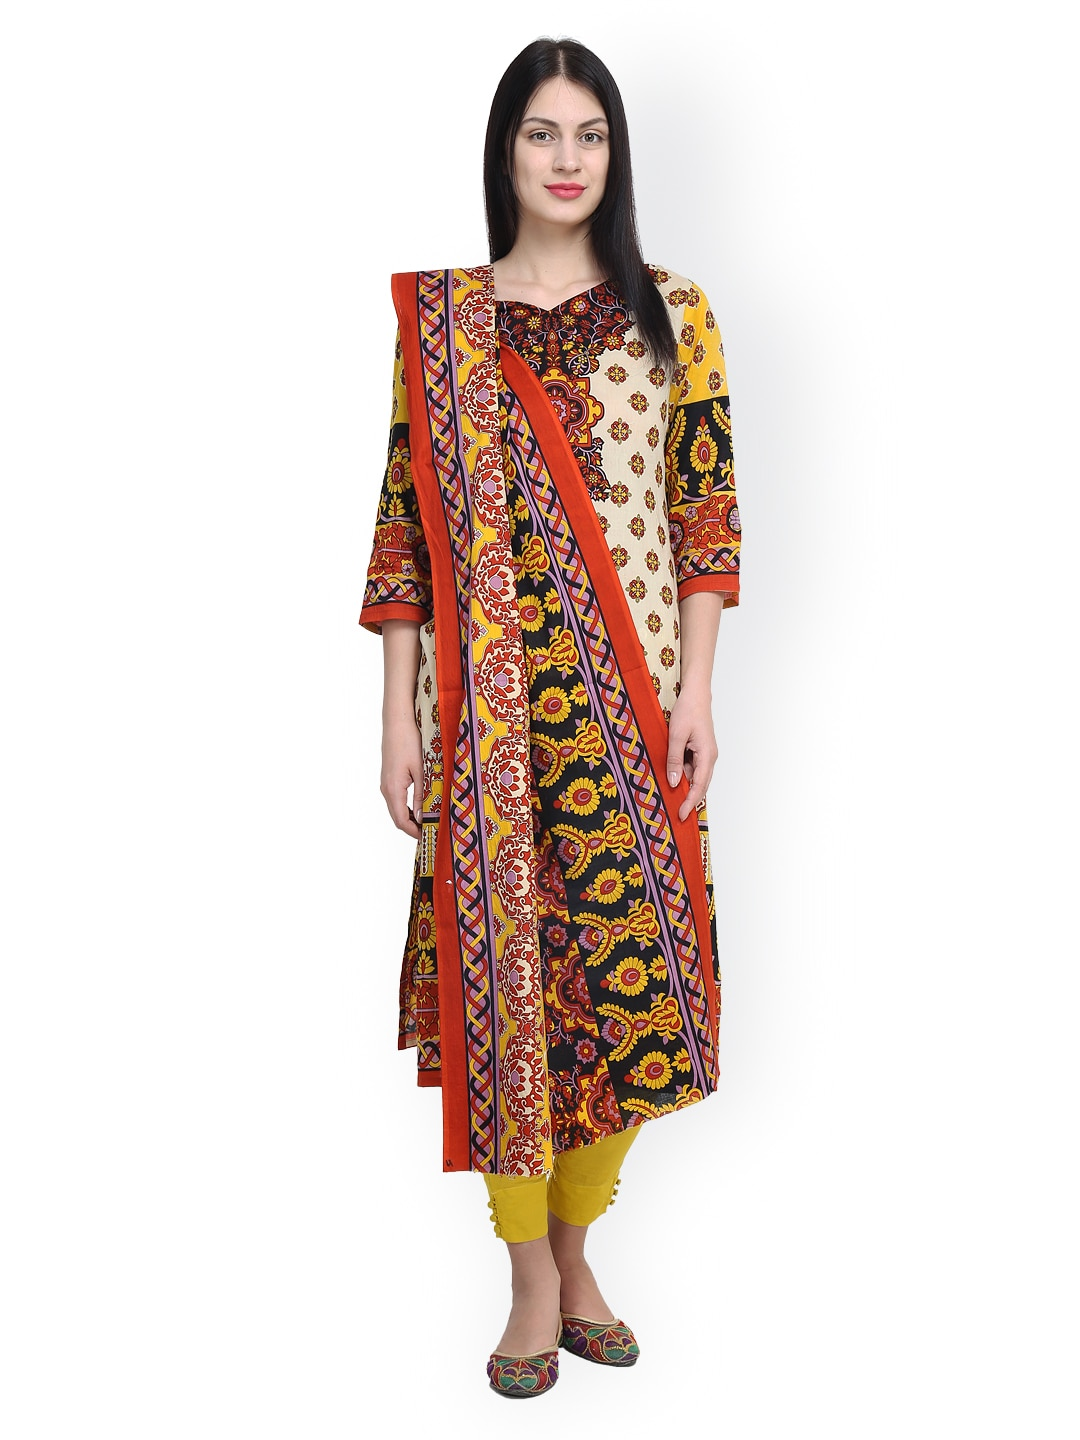 Uptown Galeria White & Yellow Printed Pakistani Cotton Lawn Unstitched Dress Material